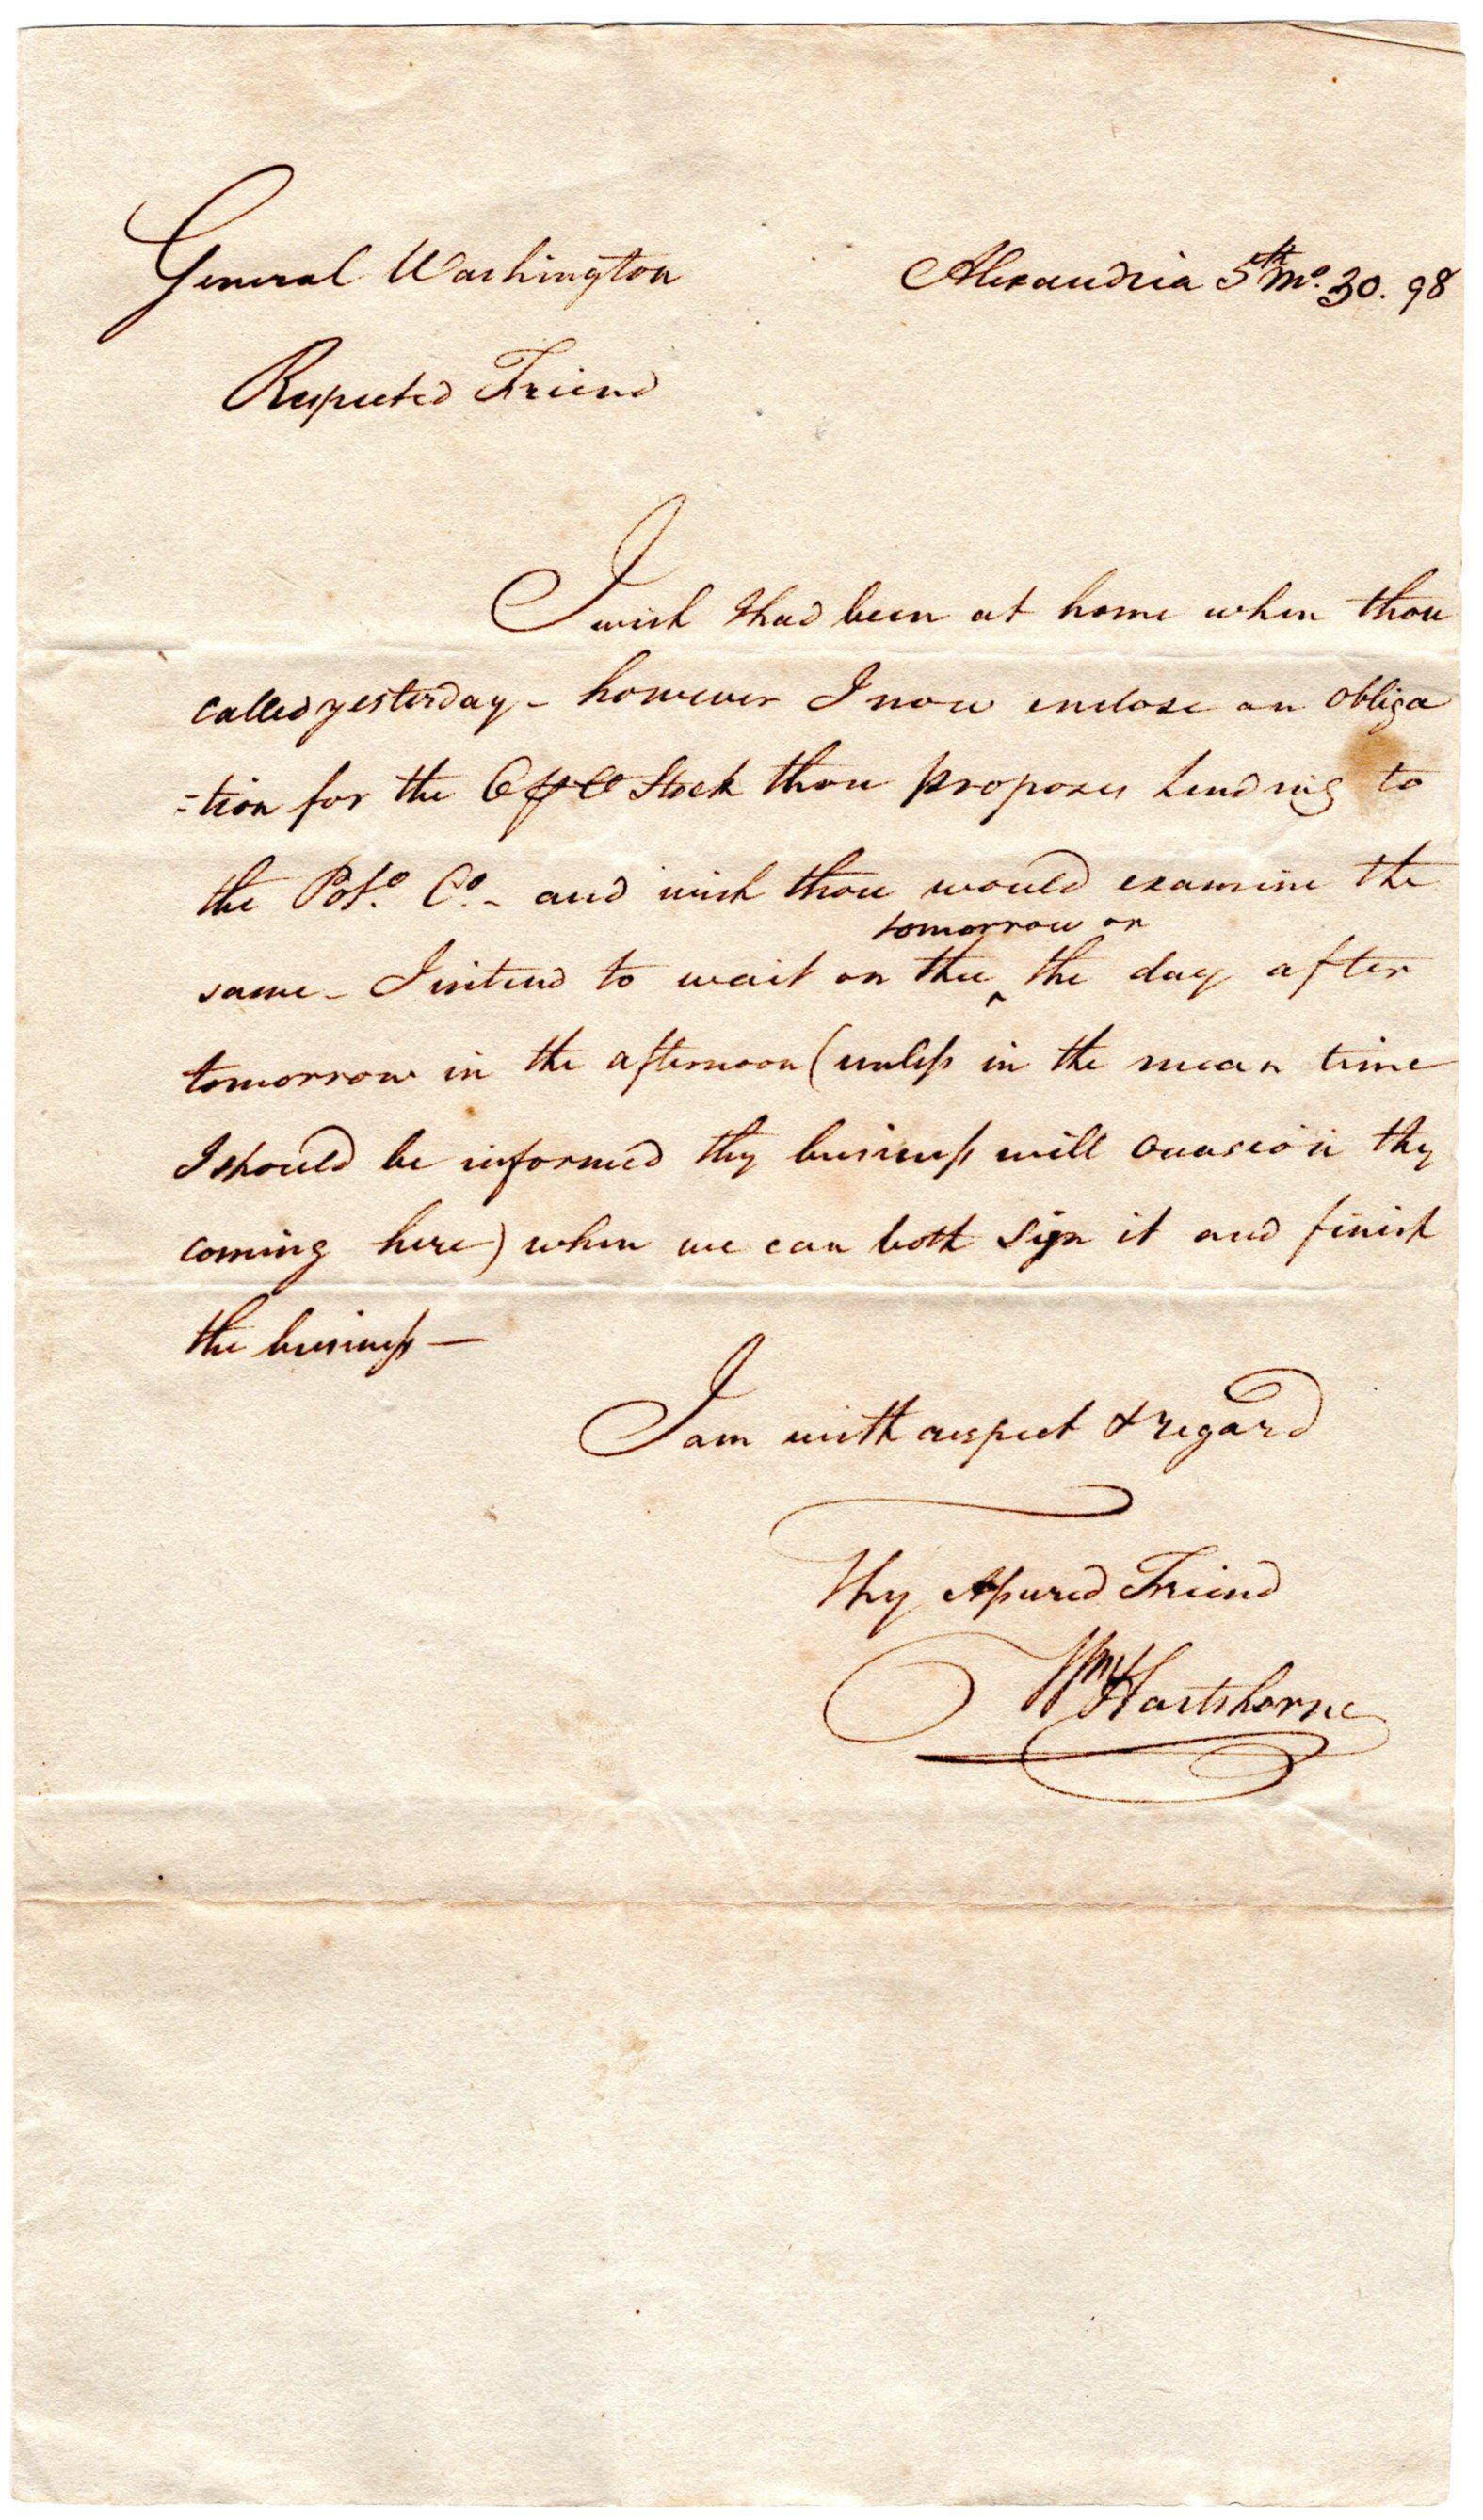 George Washington Makes Loan to the Potomac Company